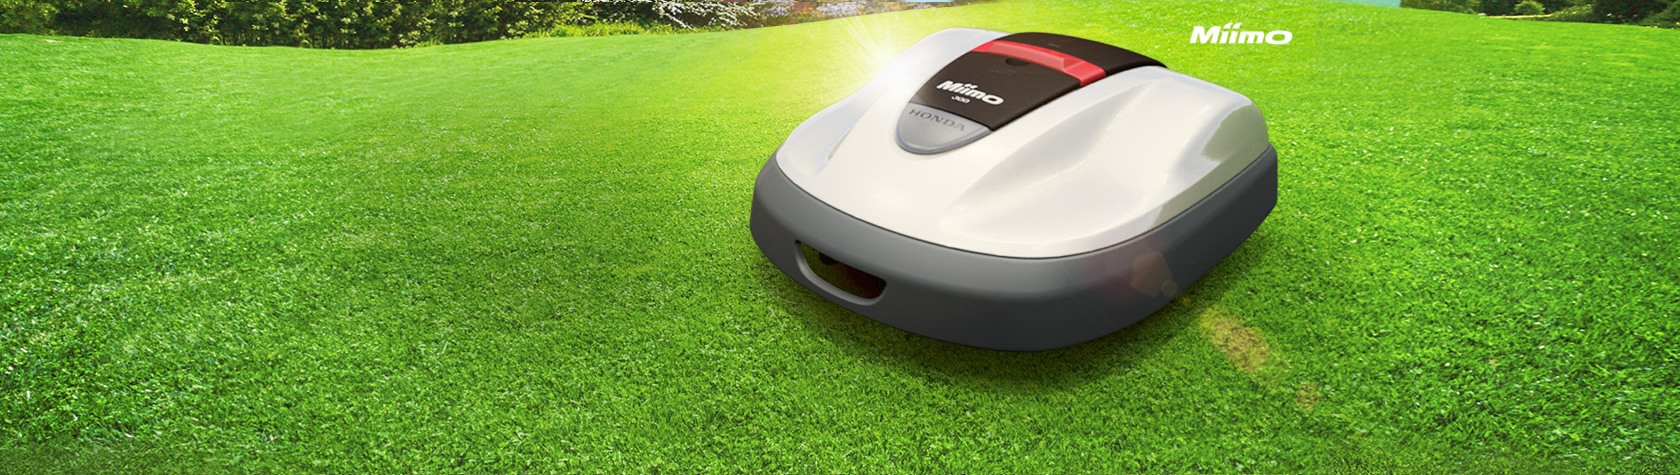 Honda Miimo The Robot Lawn Mower That Does Everything